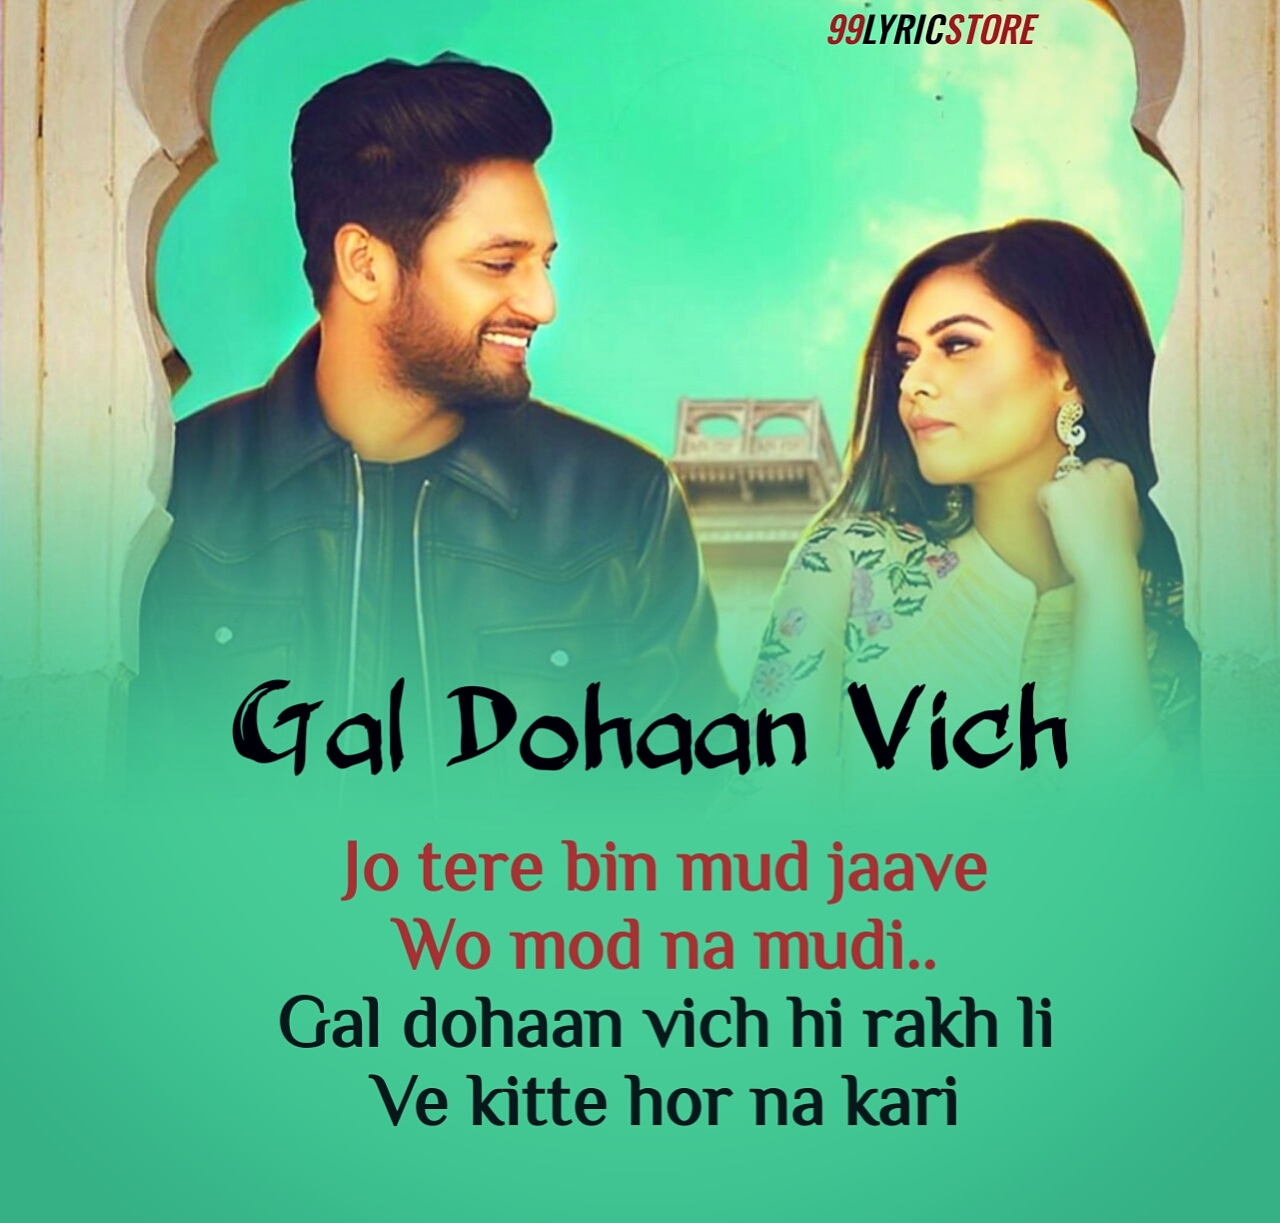 Gal Dohaan Vich Punjabi Song Lyrics Sung by Sajjan Adeeb